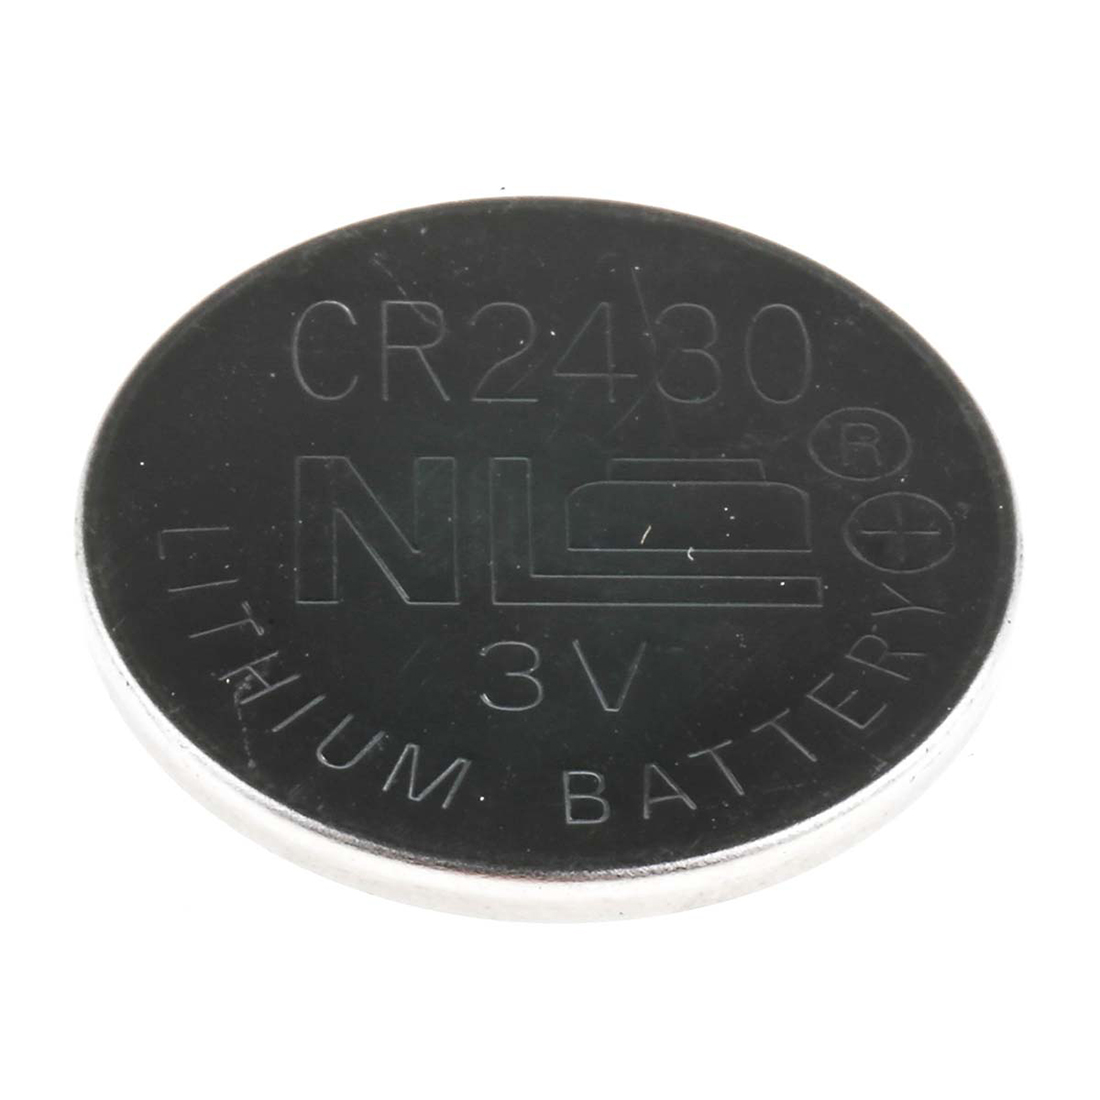 RS PRO CR2430 Button Battery, 3V, 24.5mm Diameter - Pack of 5